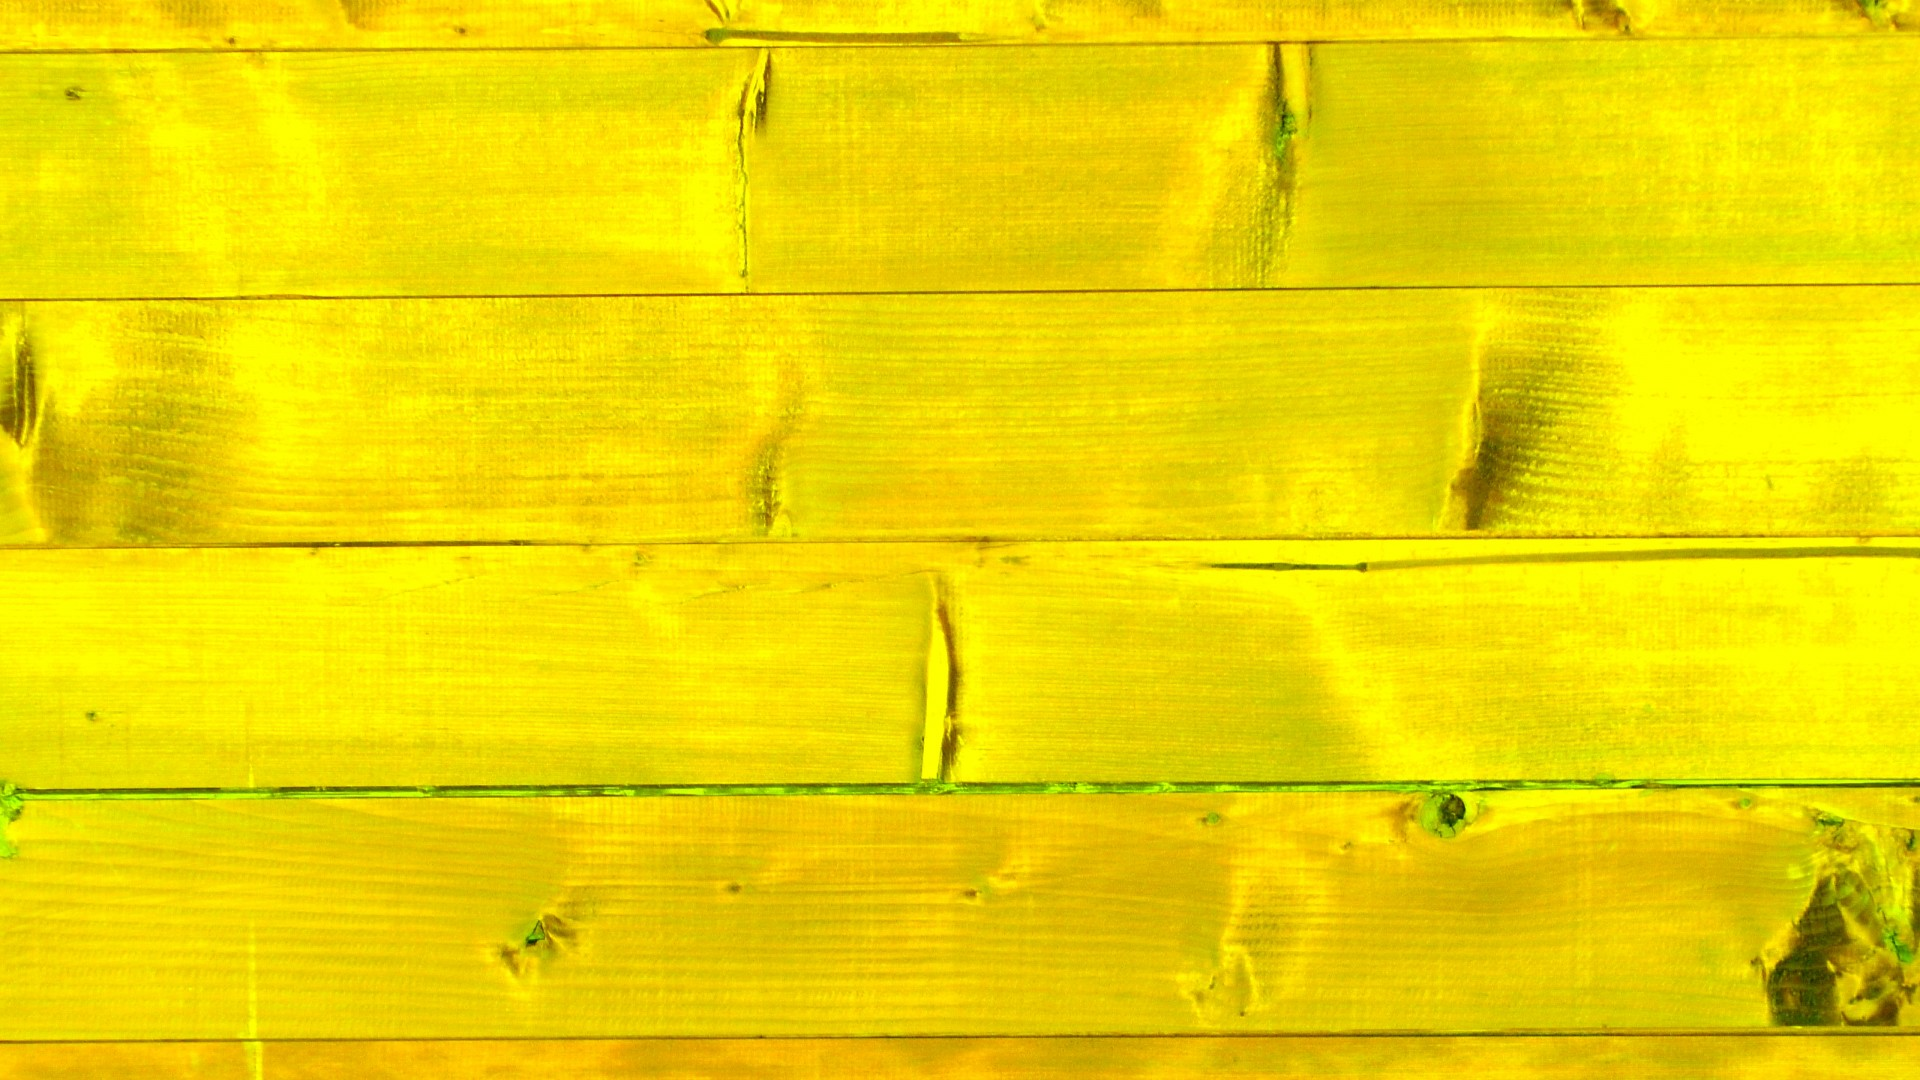 Rustic Fall Wallpaper Free Photo Yellow Wood Planks Wooden Wooden Planks